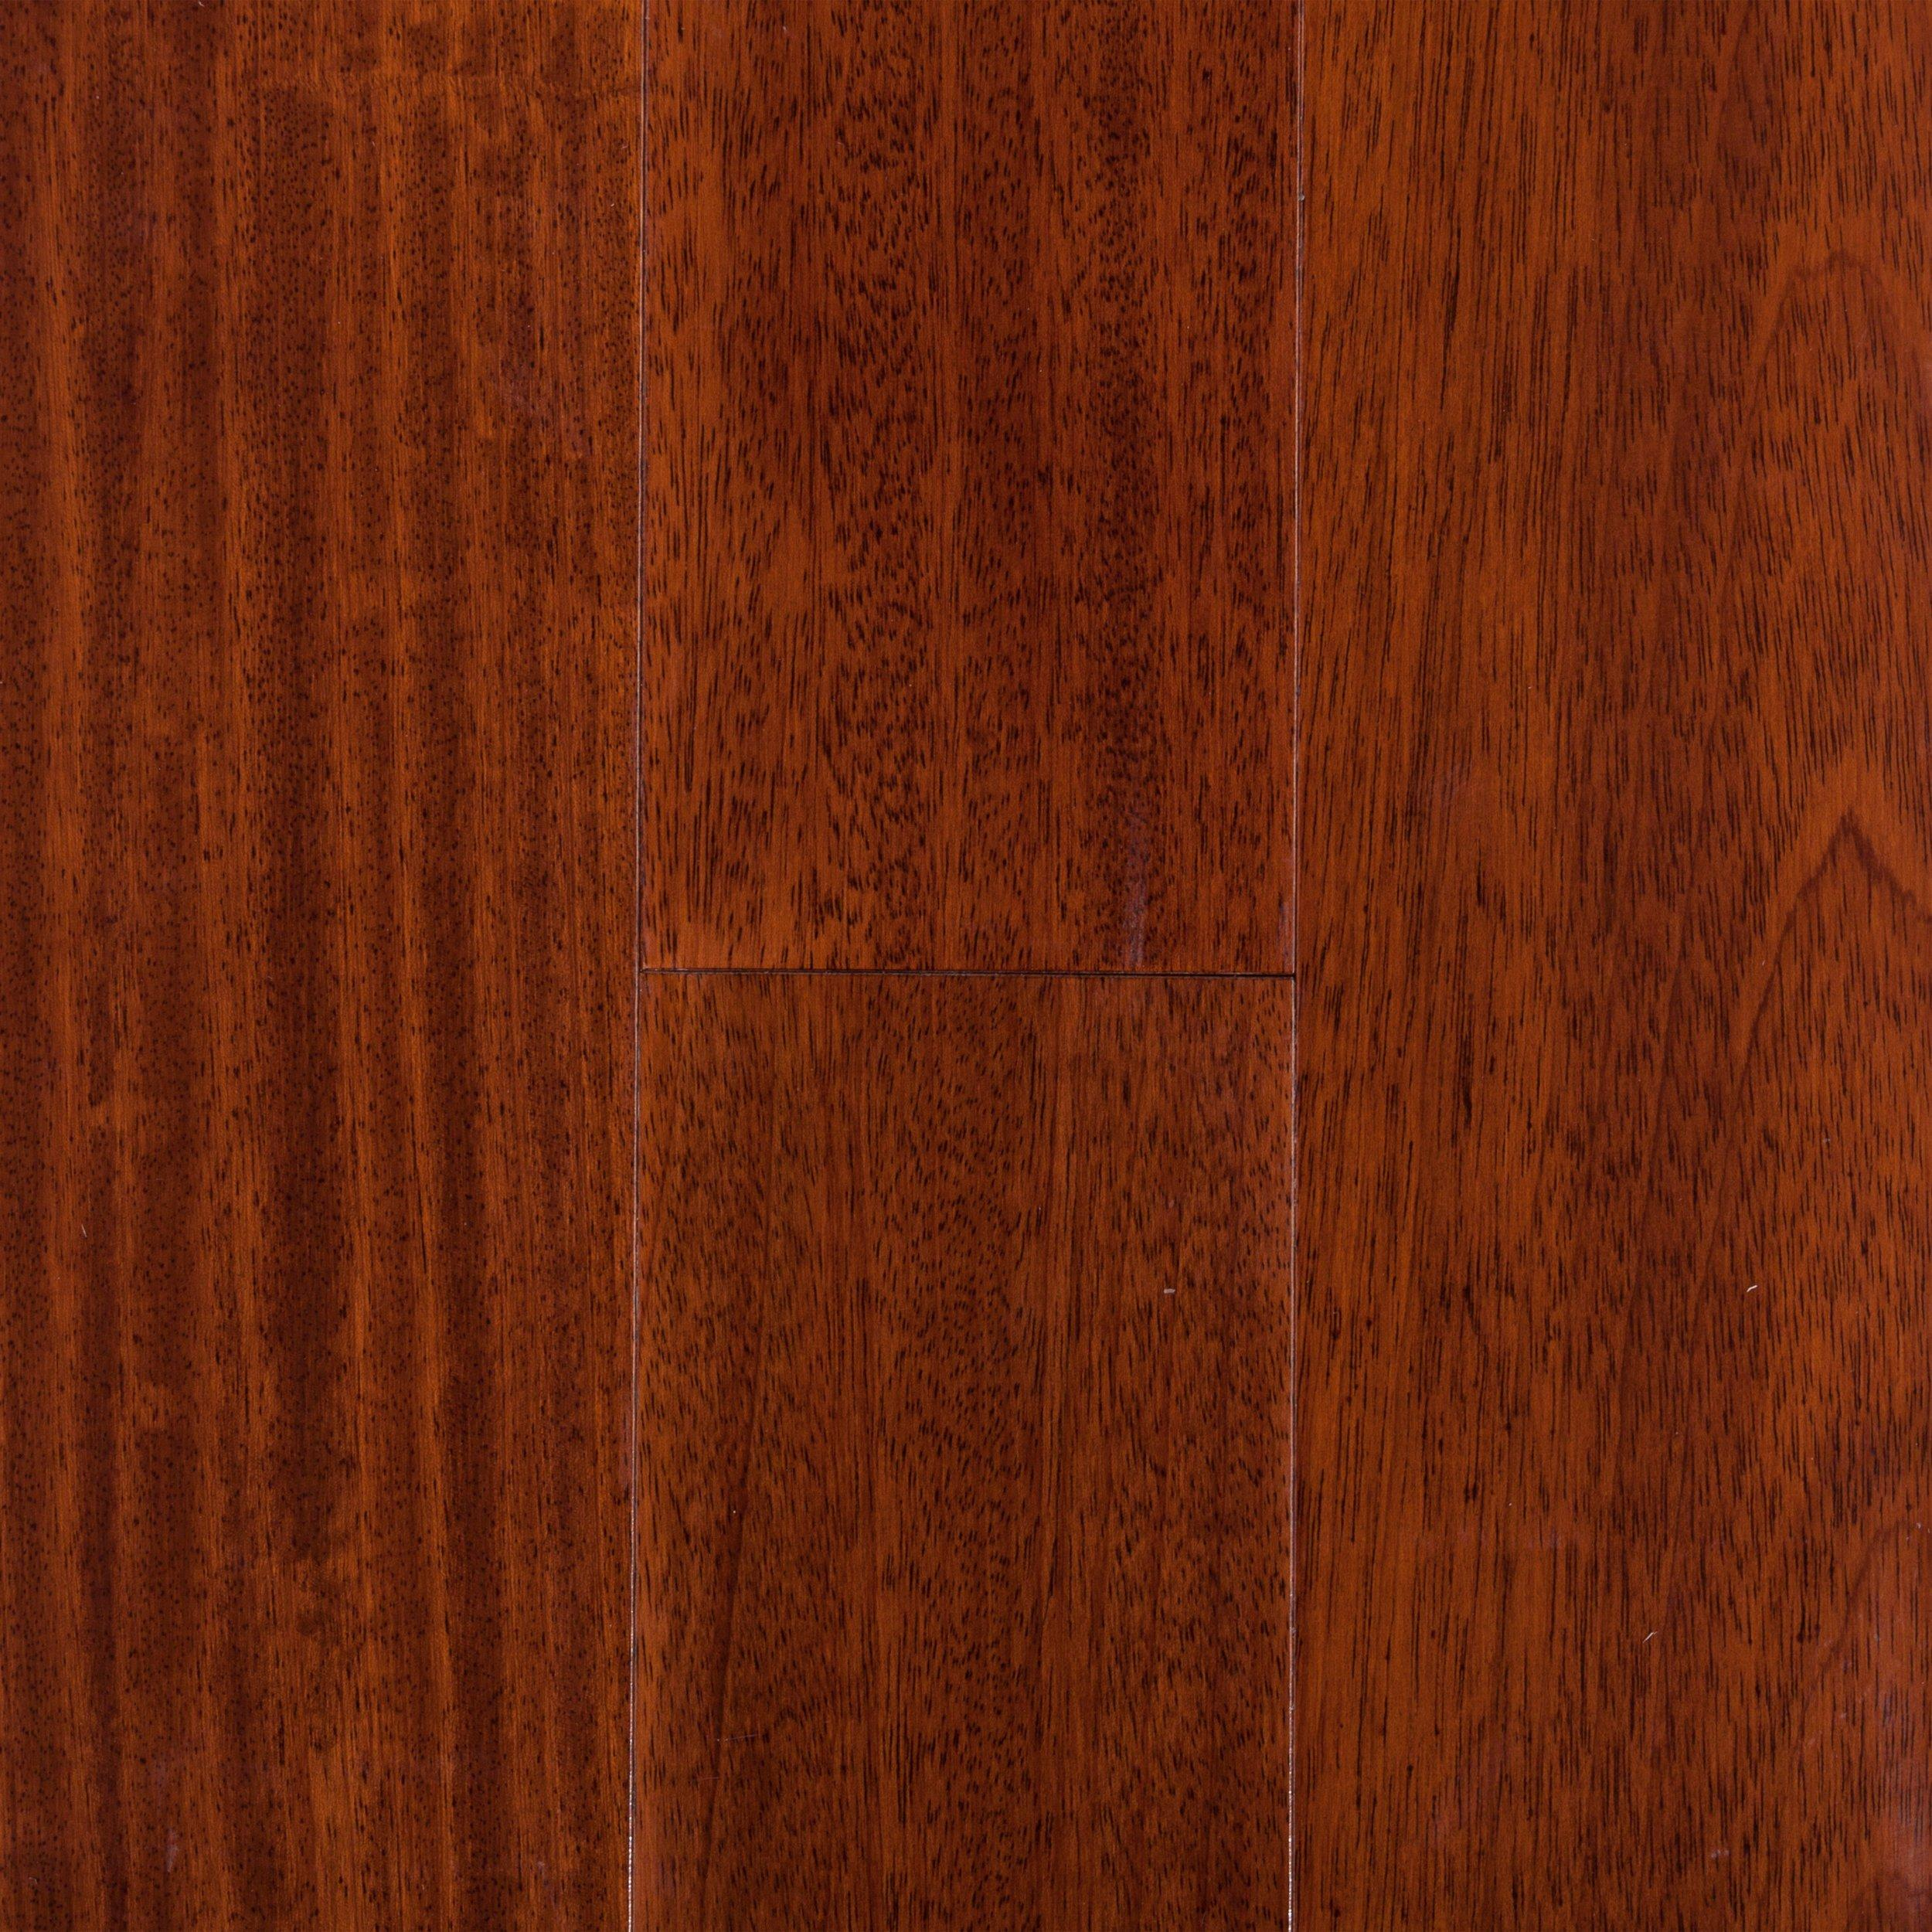 Brazilian cherry hardwood sanding brazilian cherry floor for Cherry wood flooring